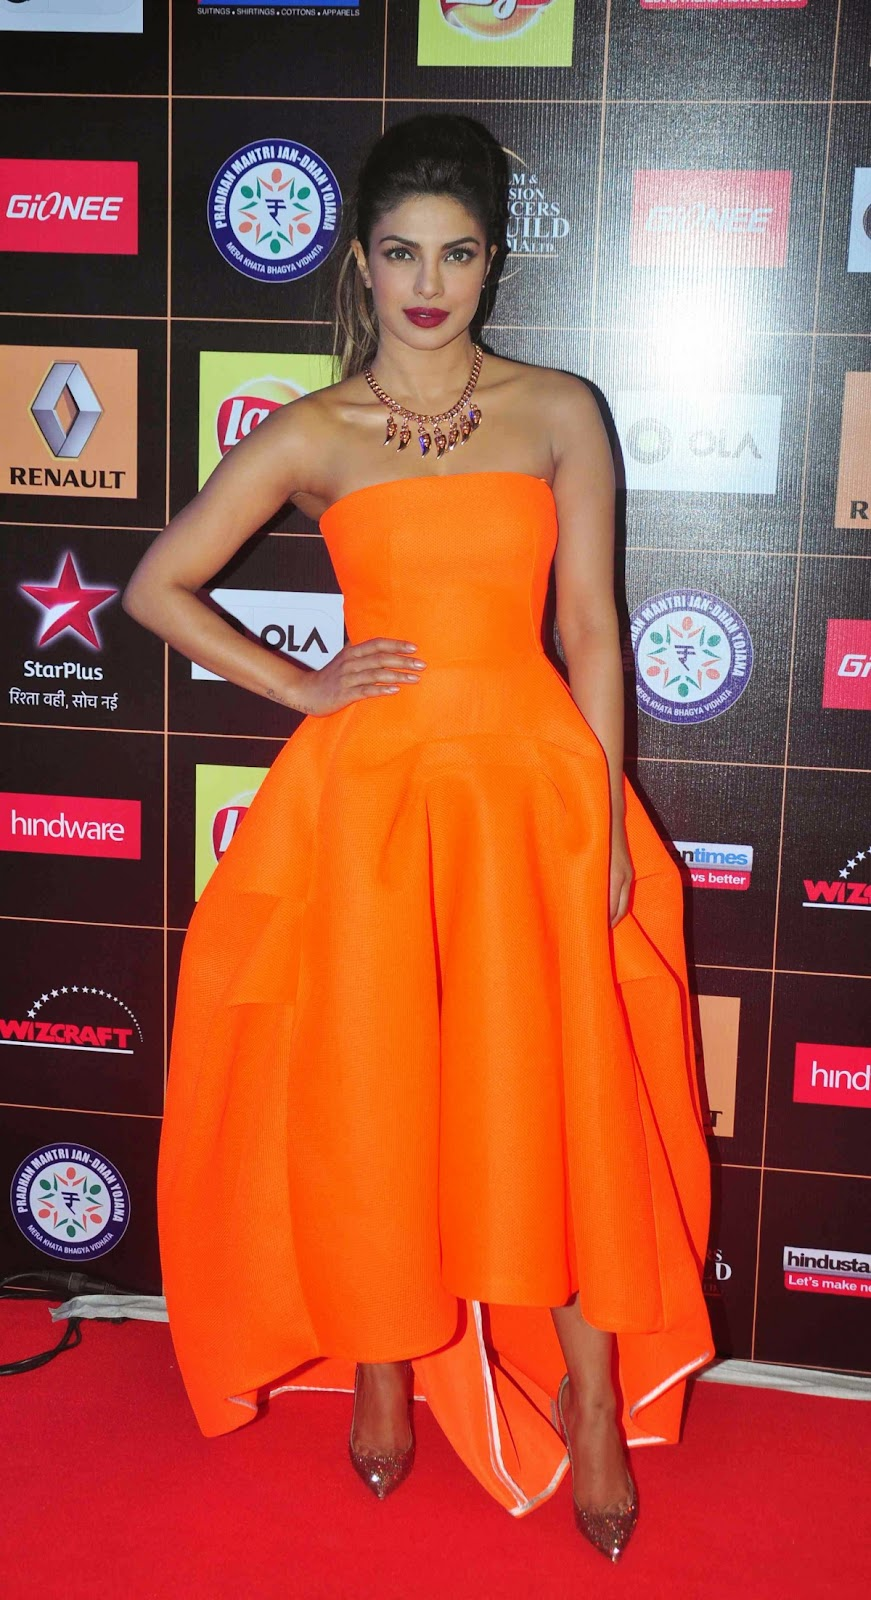 Priyanka_Chopra-Orange-Strapless-Dress